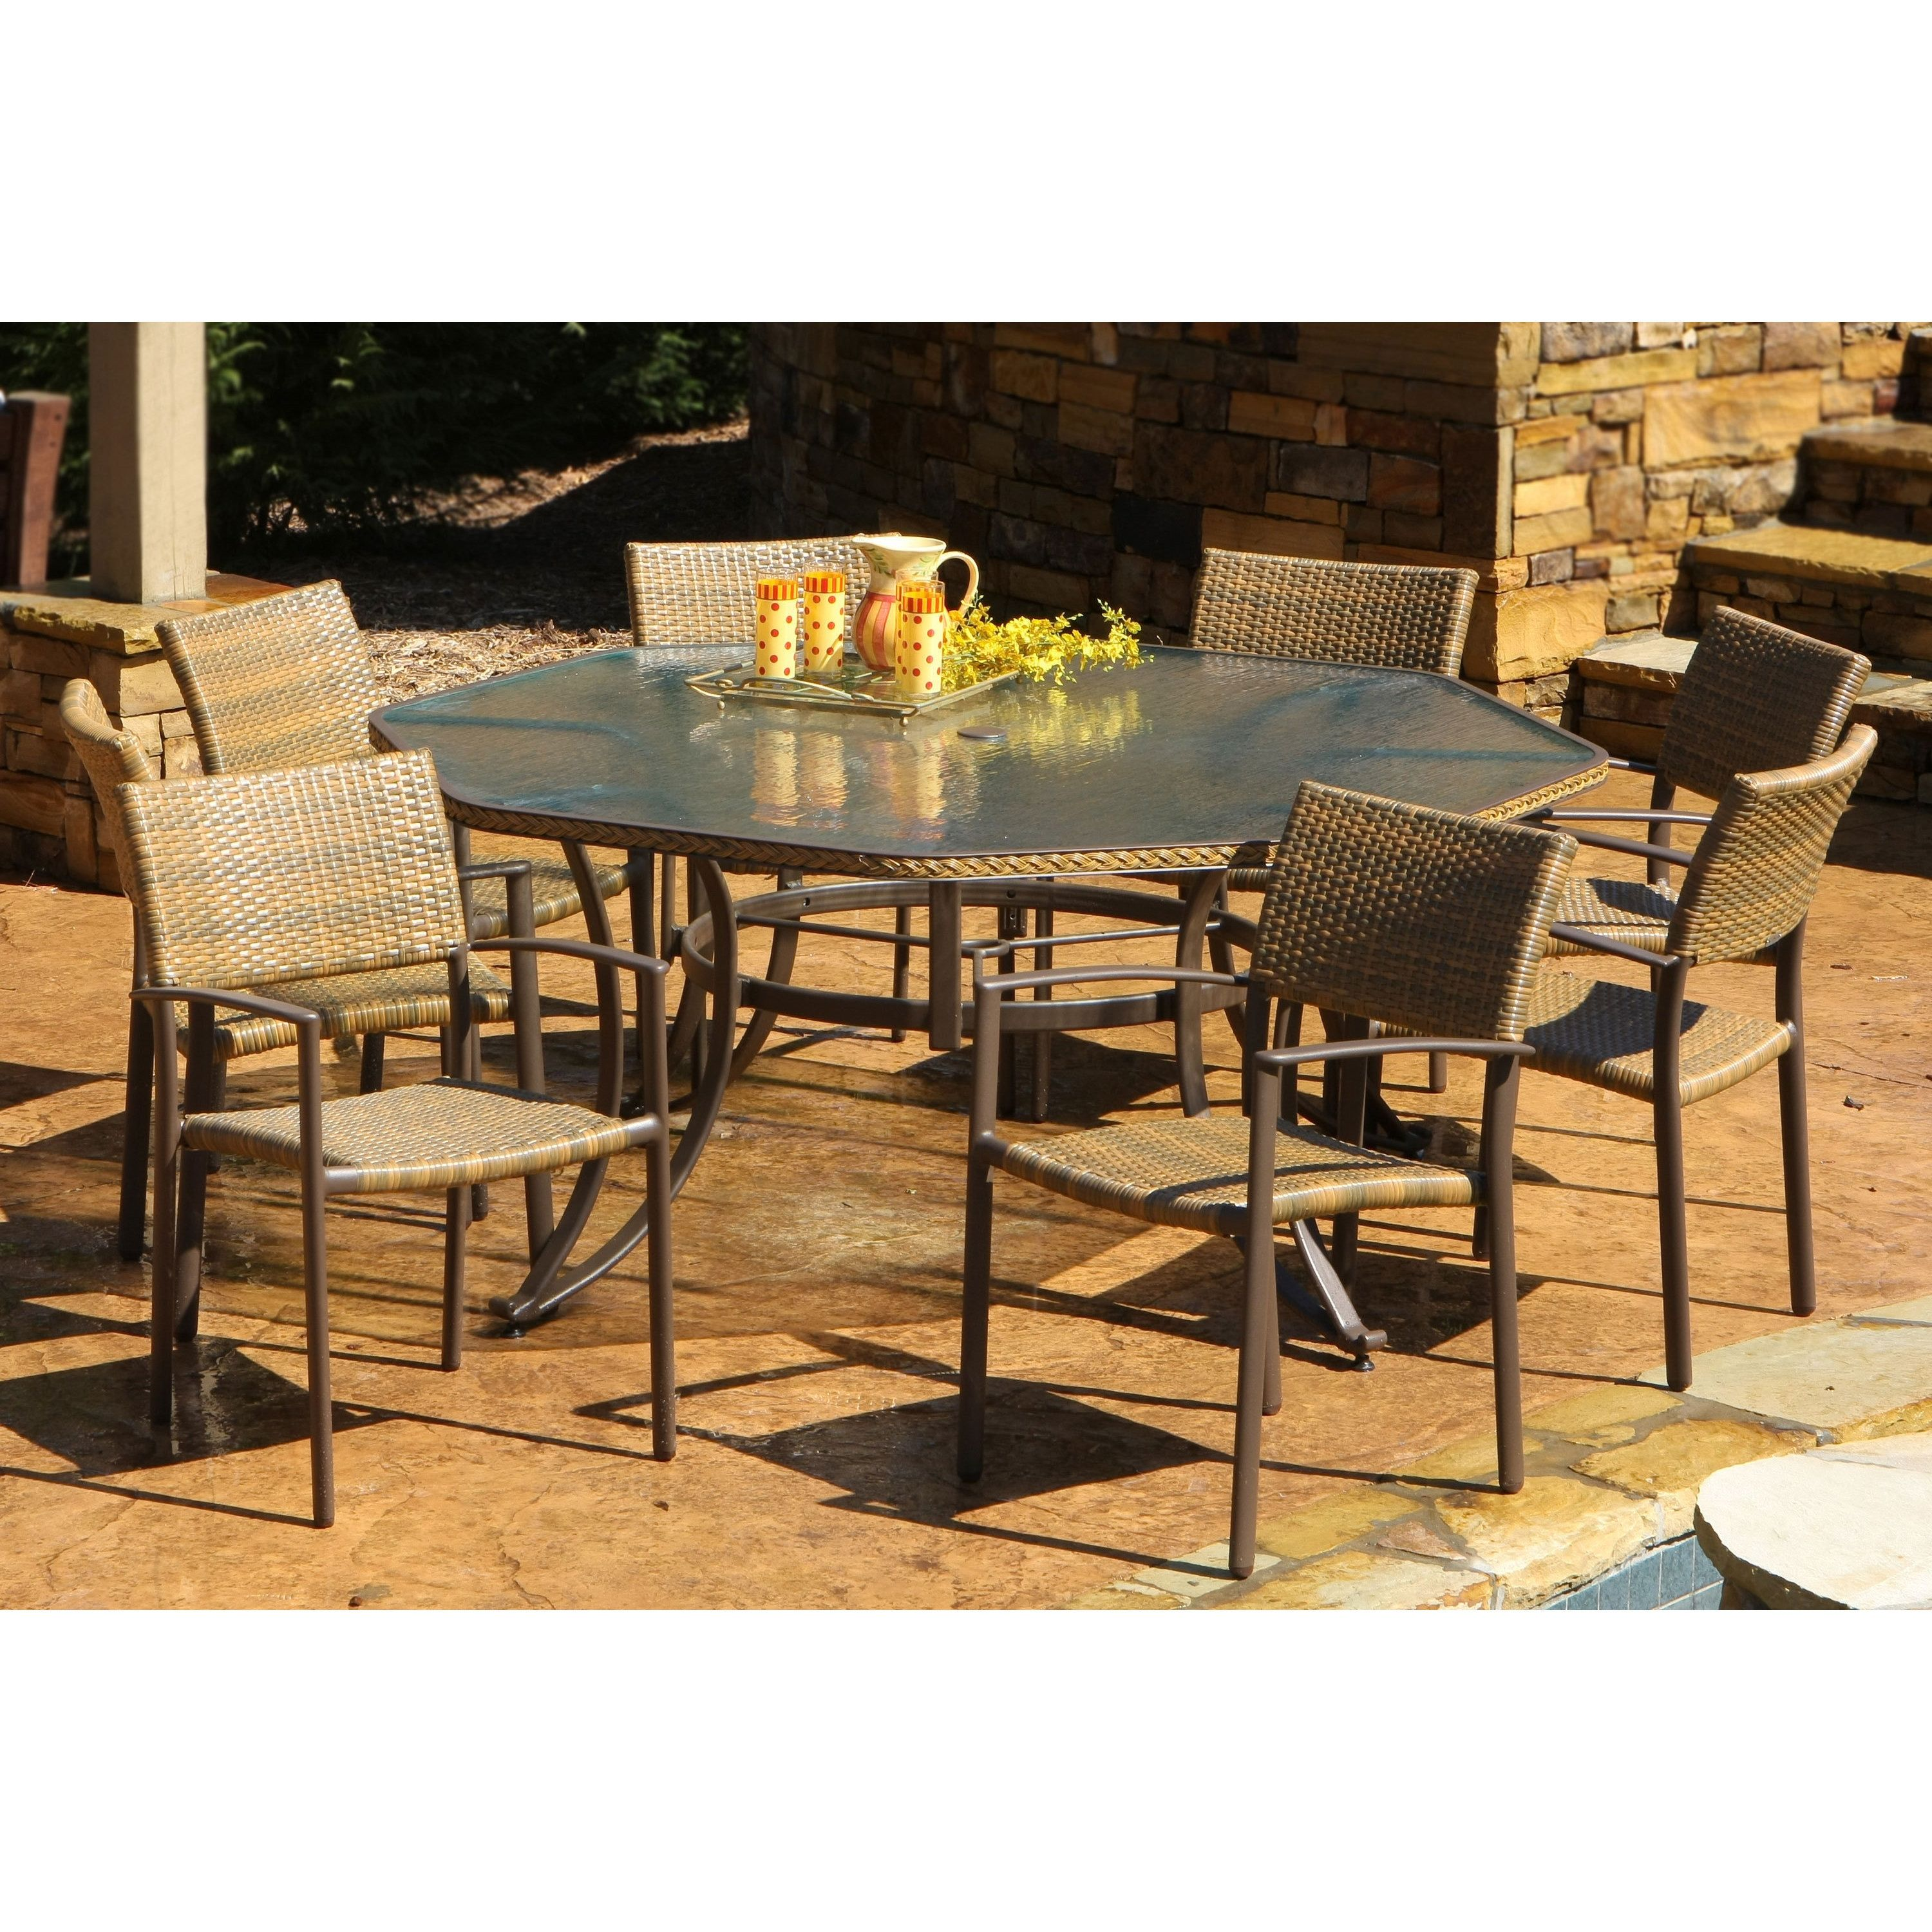 Silver Patio Furniture.Havenside Home Cape 9 Piece Maracay Outdoor Octagon Dining Set 9pc